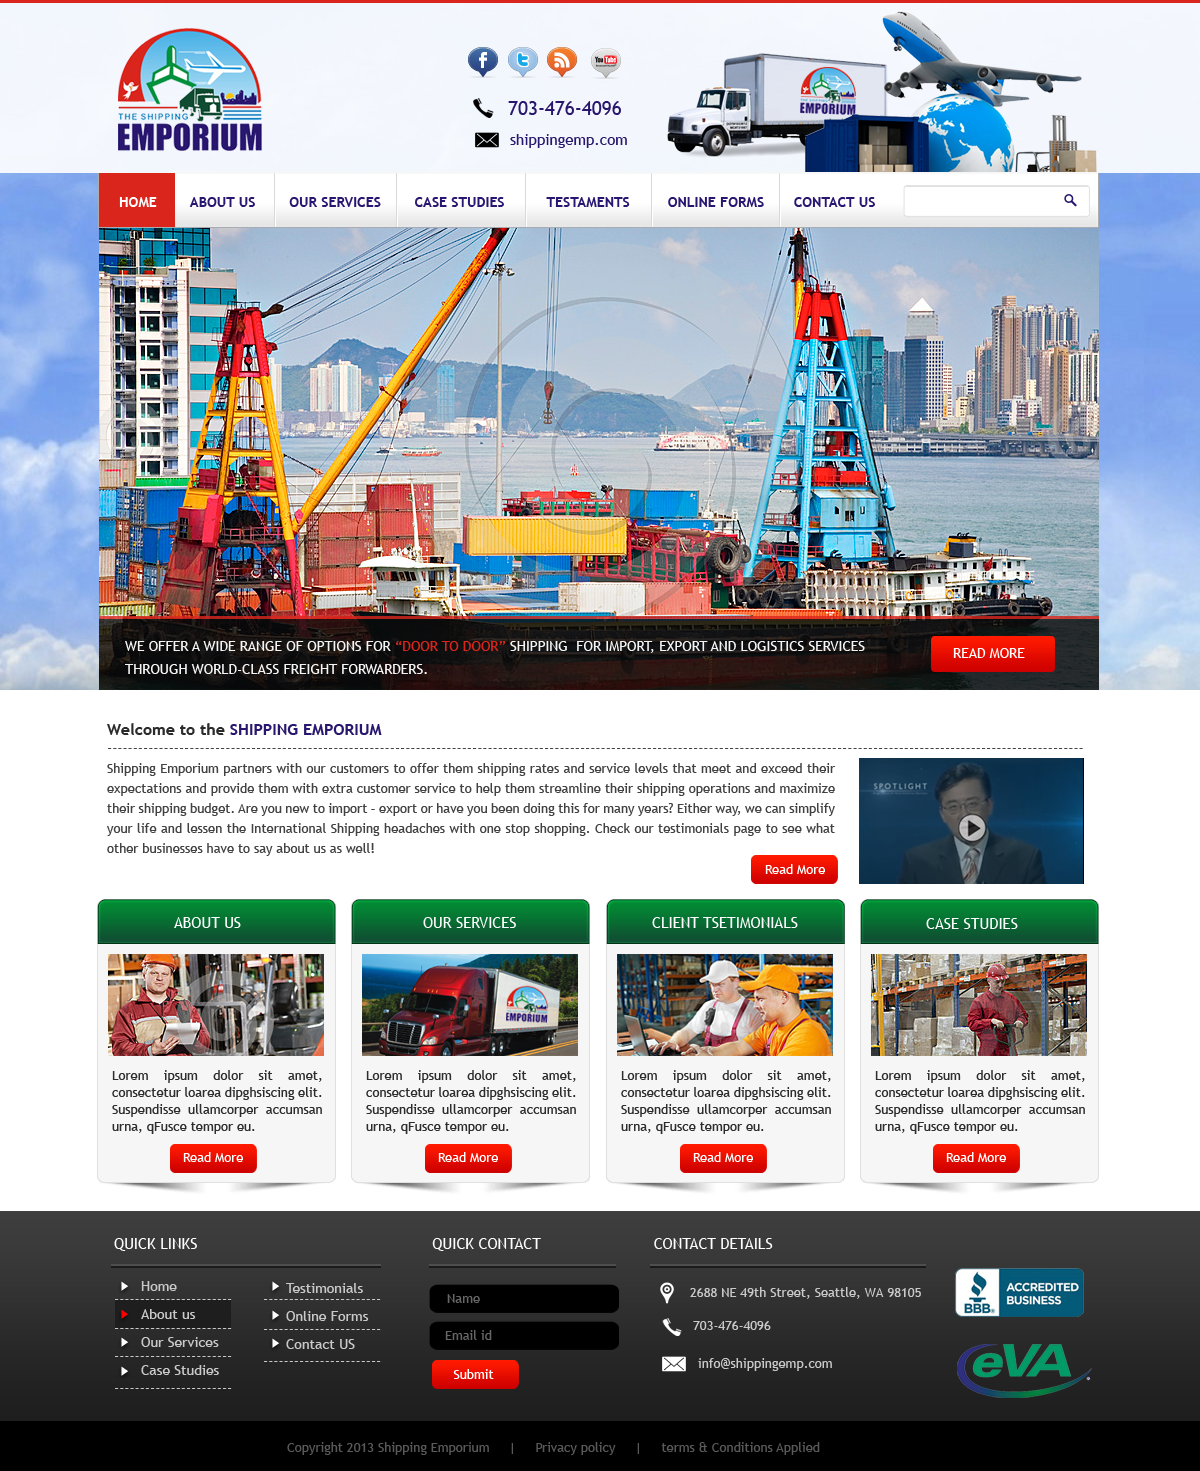 Web Page Design by Vishwa Km - Entry No. 17 in the Web Page Design Contest Artistic Web Page Design for The Shipping Emporium Website.